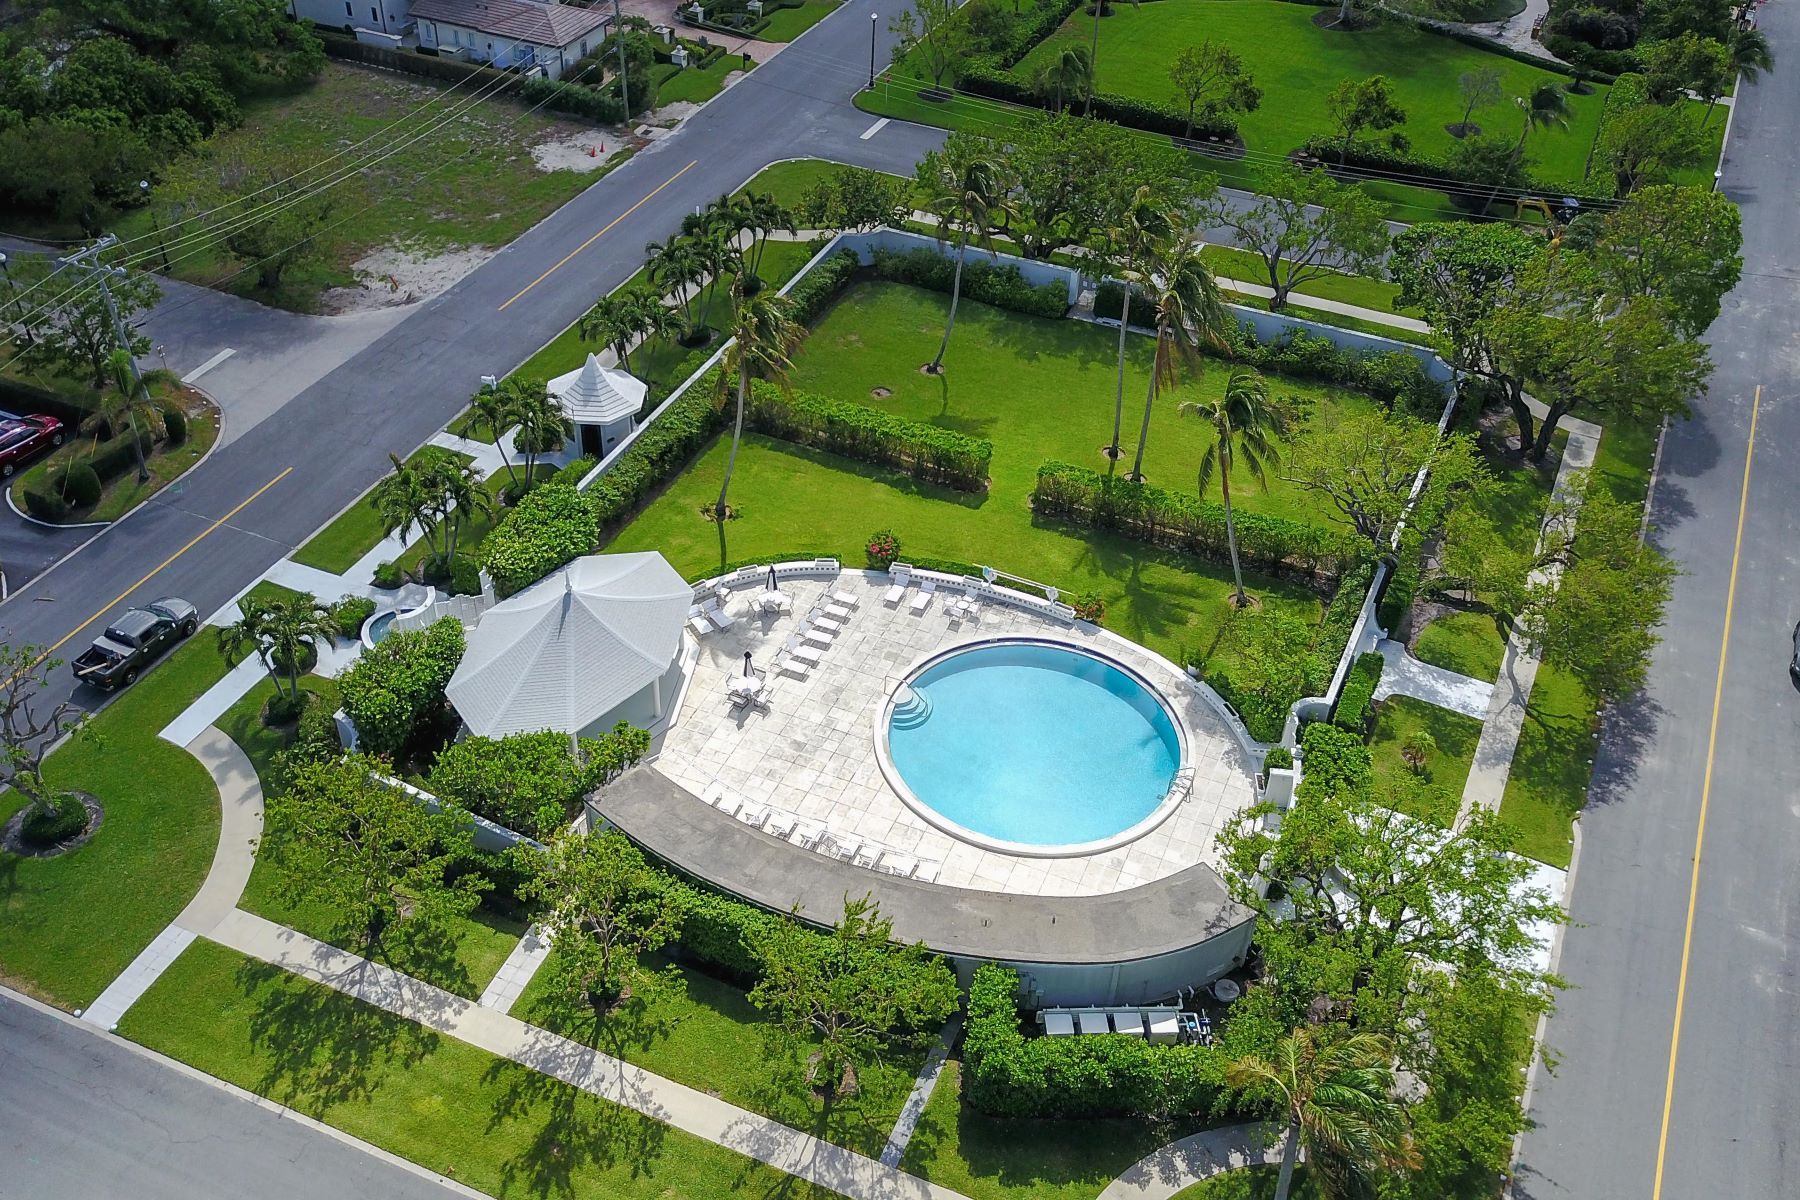 Additional photo for property listing at Ibis Isle Condo 2180 Ibis Isle Rd # 2 Palm Beach, Florida 33480 Hoa Kỳ